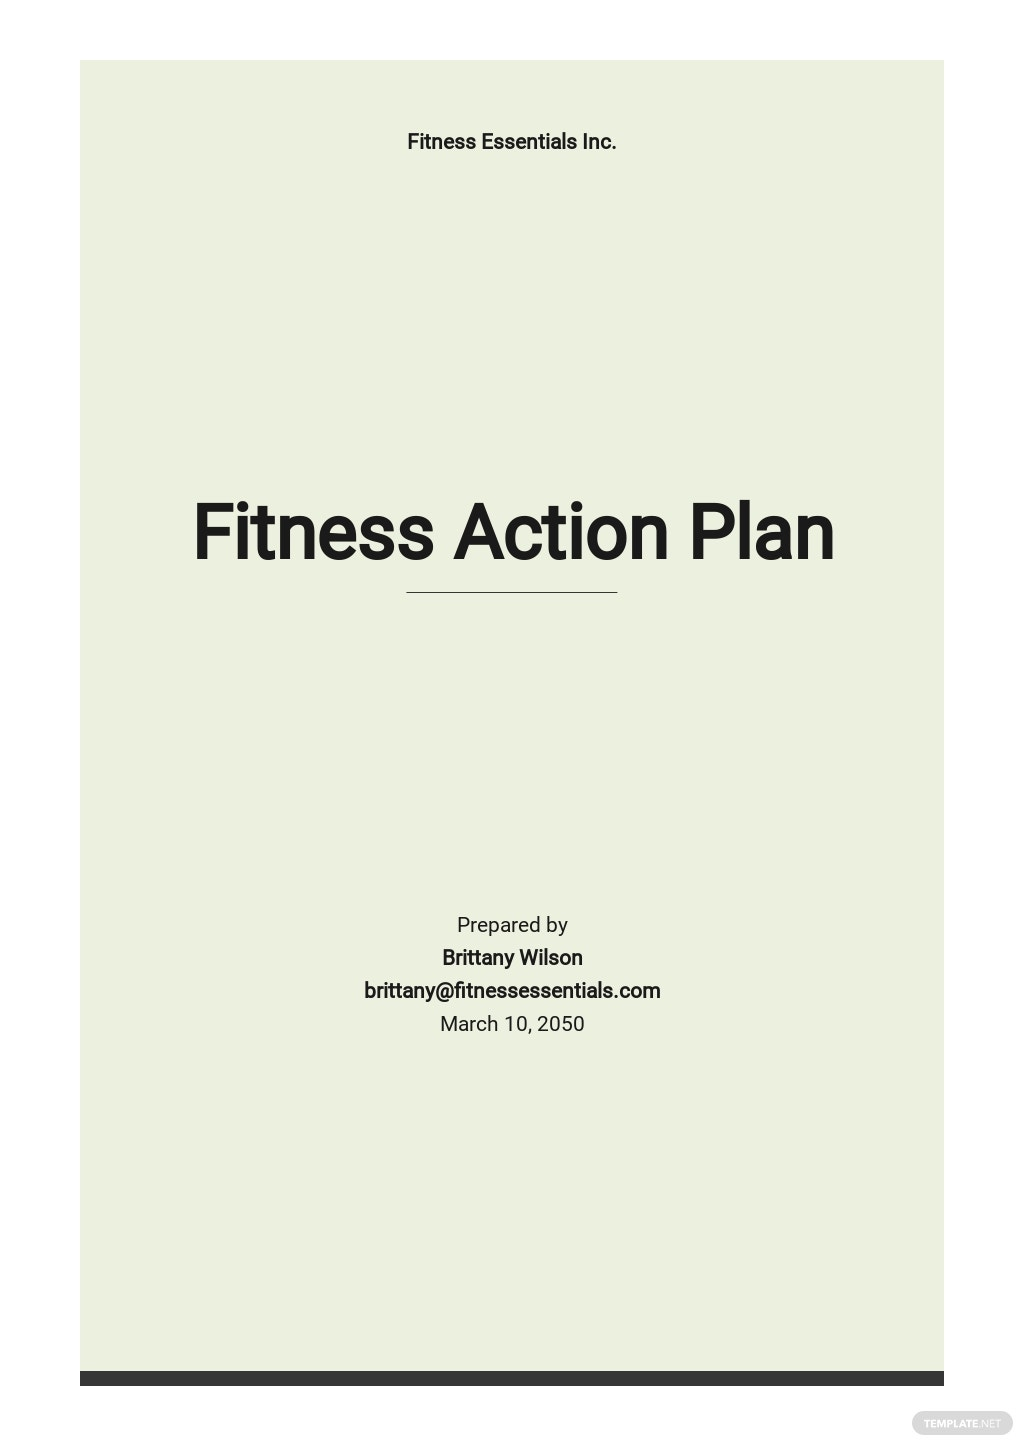 Fitness Action Plan Template